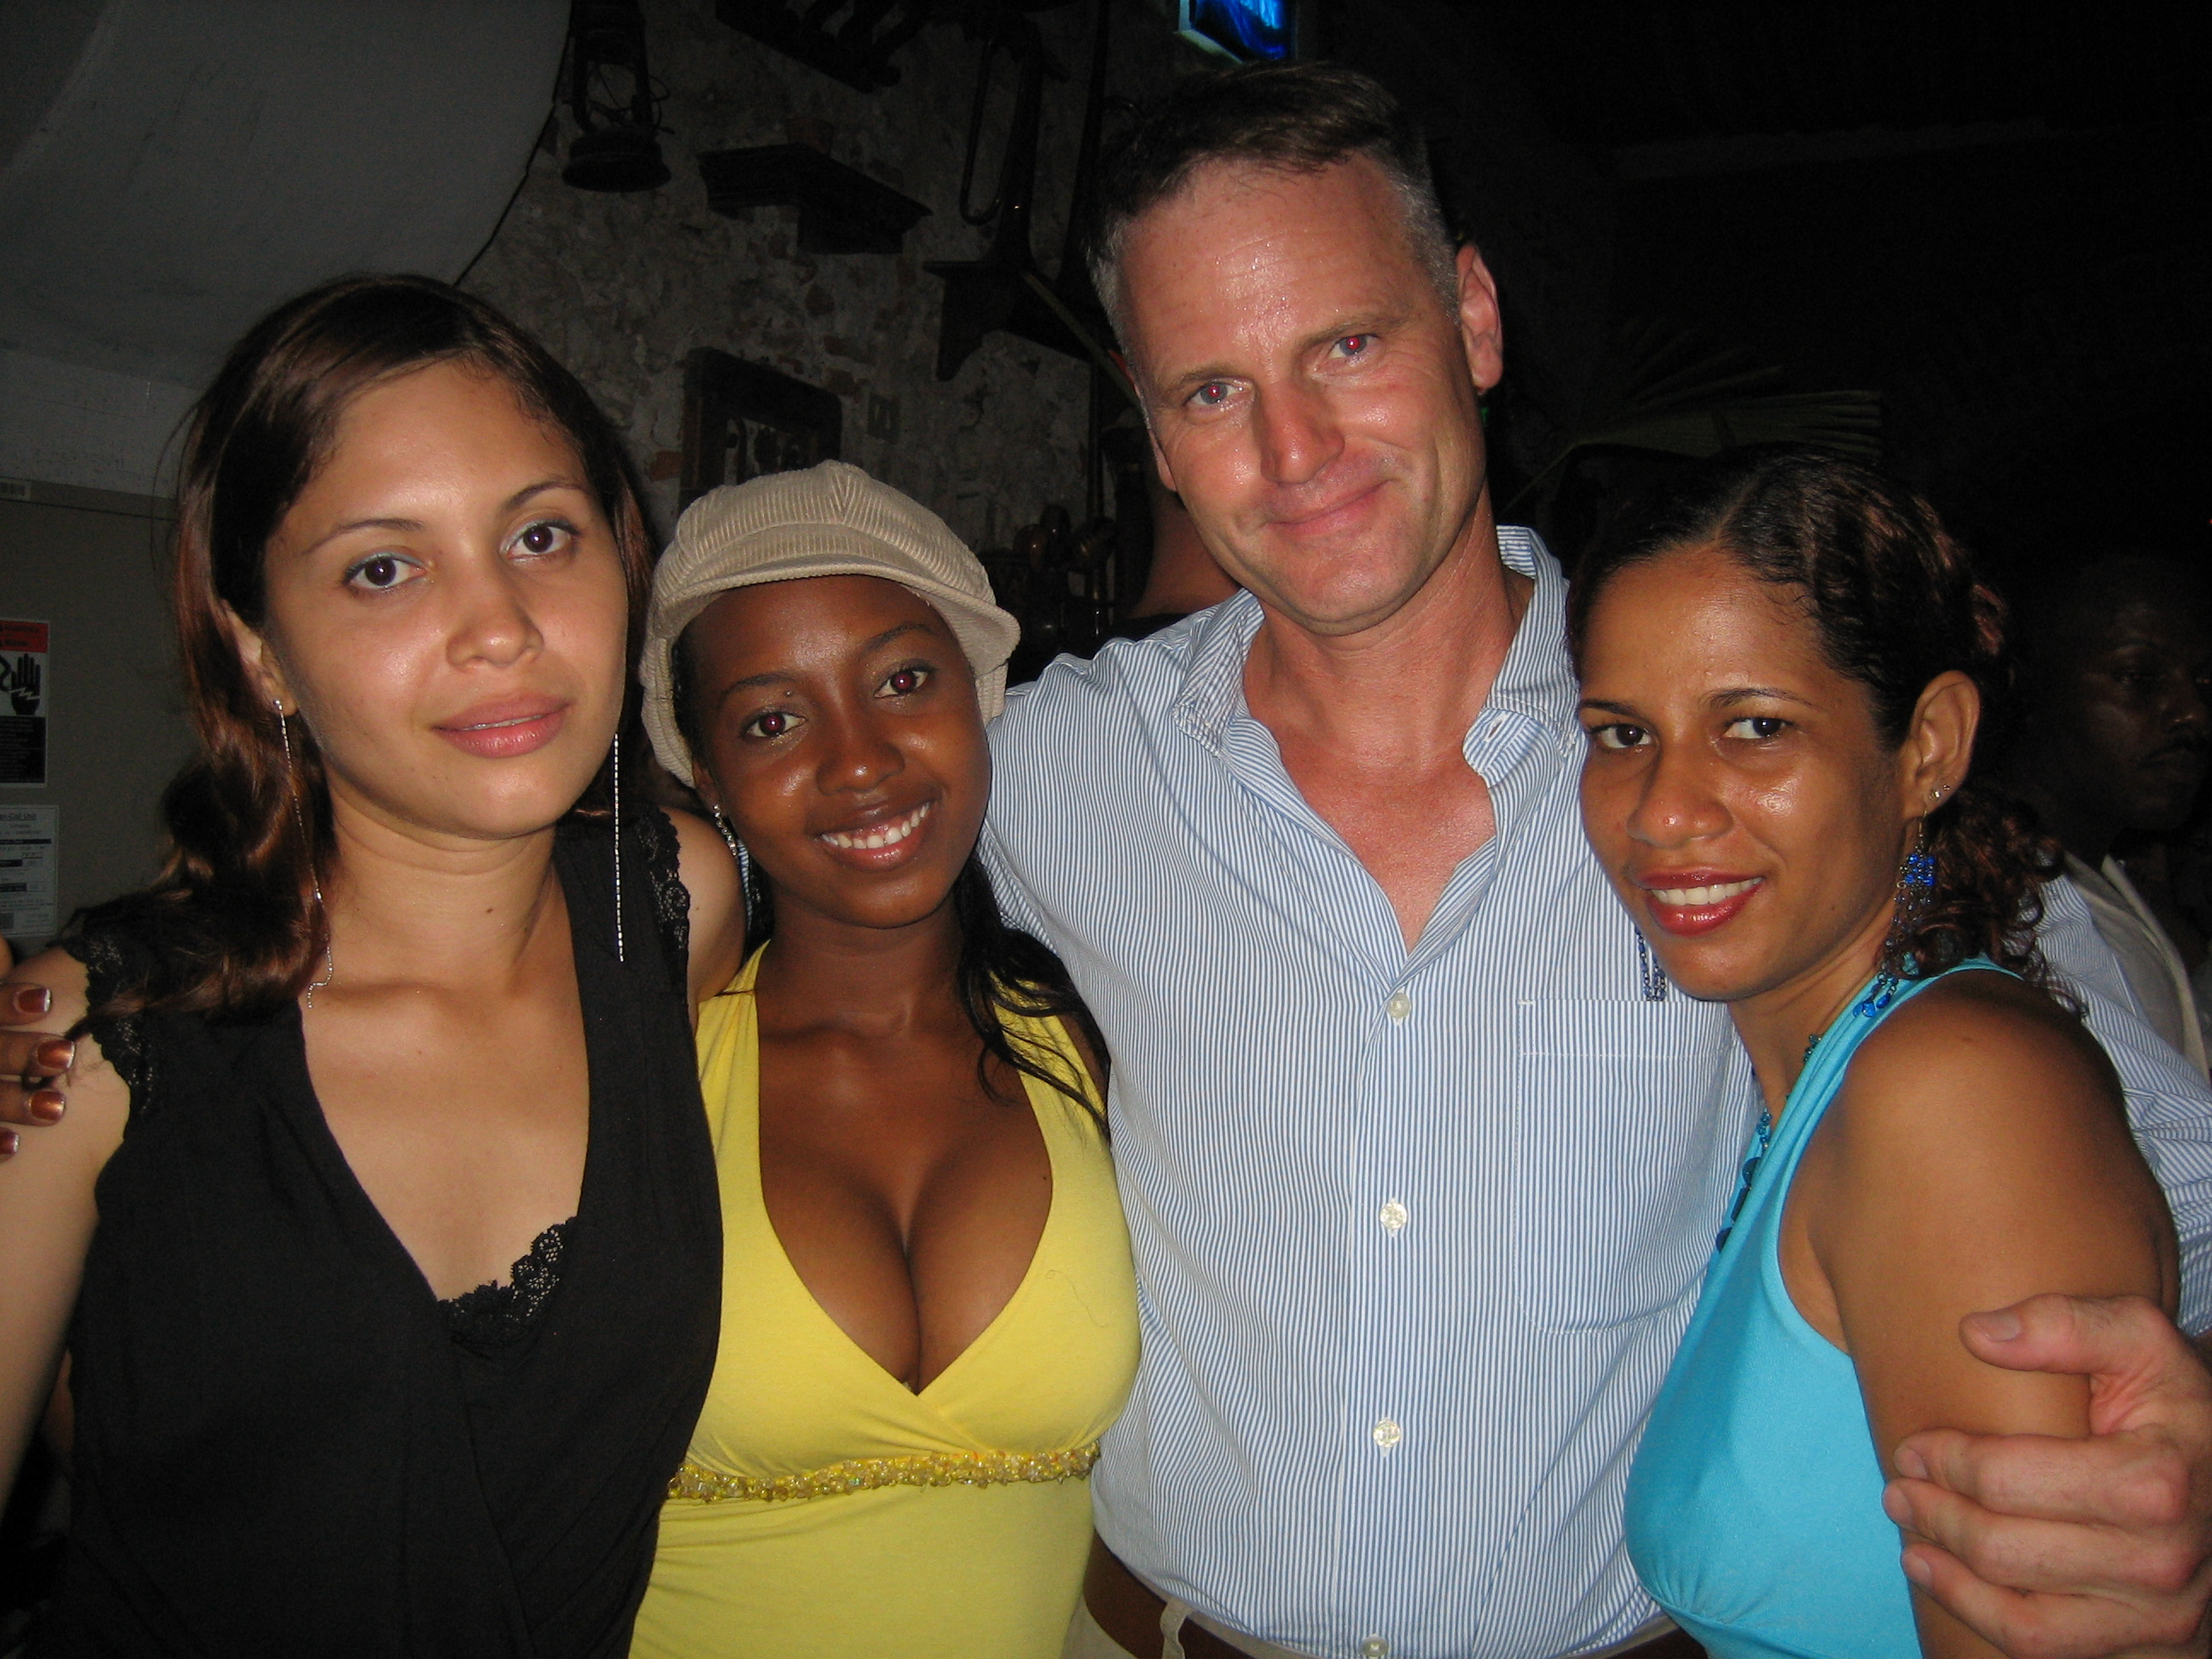 A client meeting his potential matches - Latina women